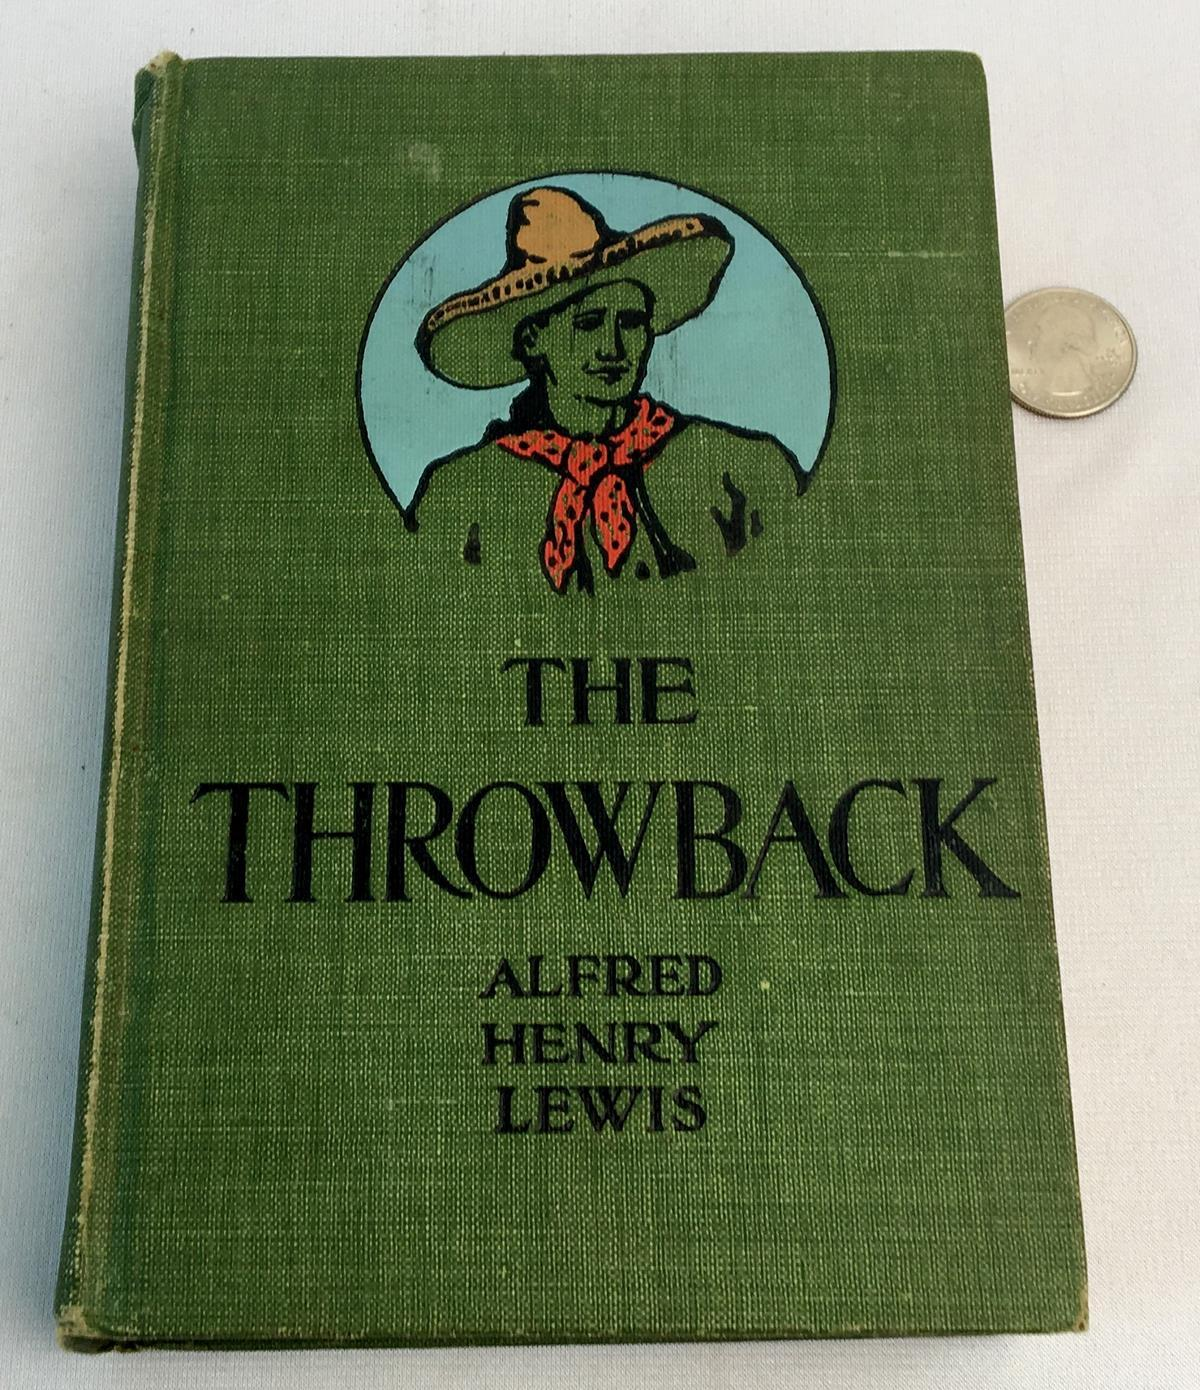 1906 The Throwback: A Romance of The Southwest by Alfred Henry Lewis Illustrated by N.C. Wyeth FIRST EDITION